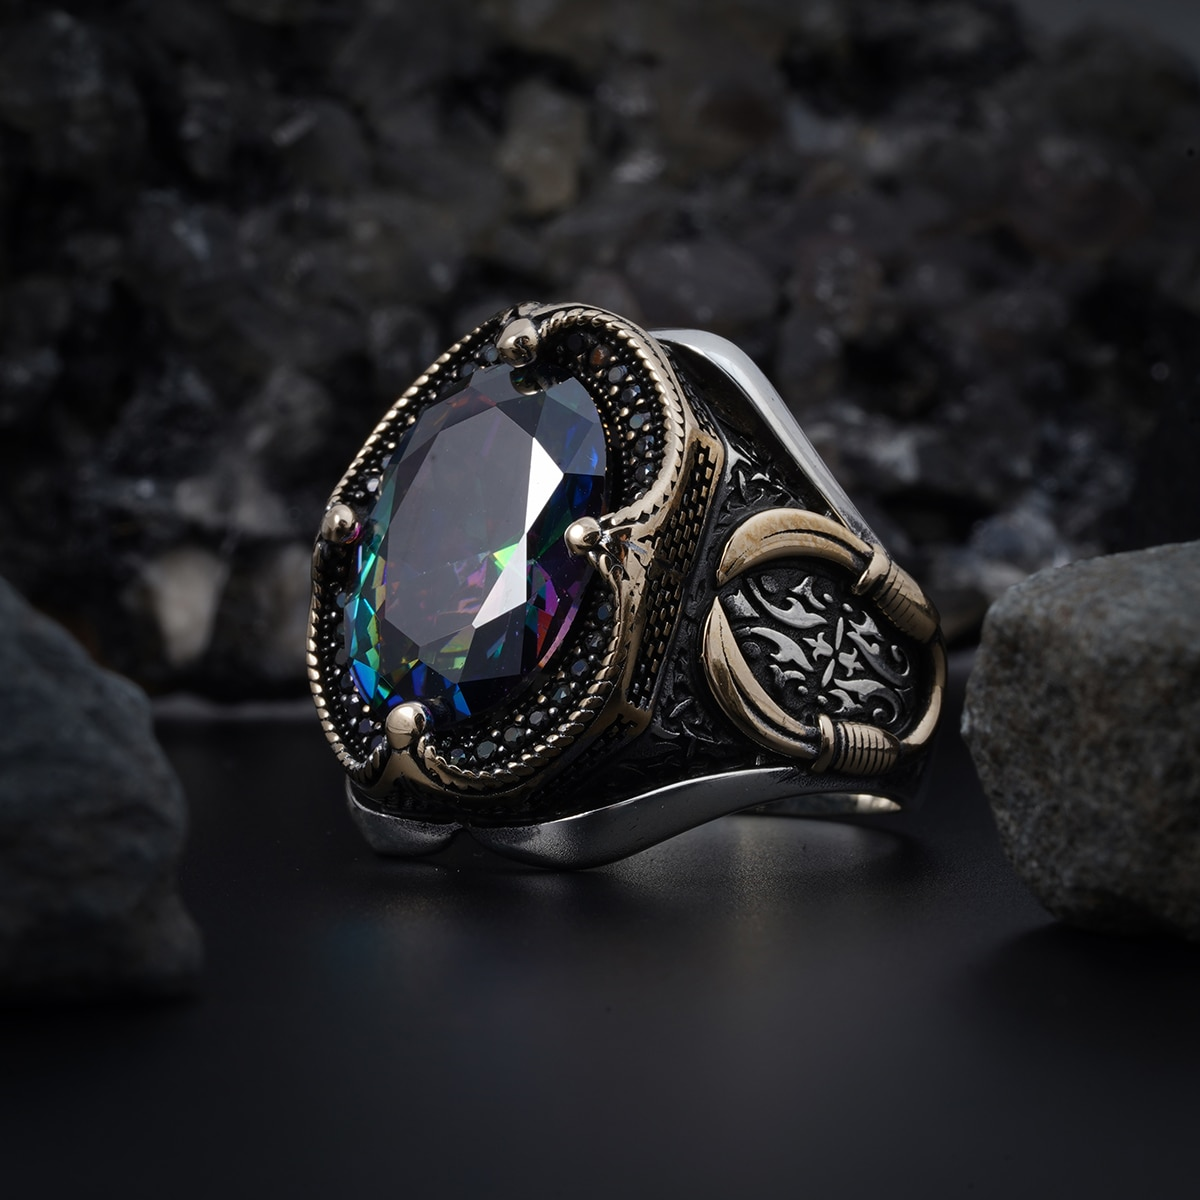 Promo Alexandrite Mistik Topaz Natural Stone 925 Sterling Silver Ring For Men Jewelry Fashion Vintage Gift Turkish Style Rings Onyx